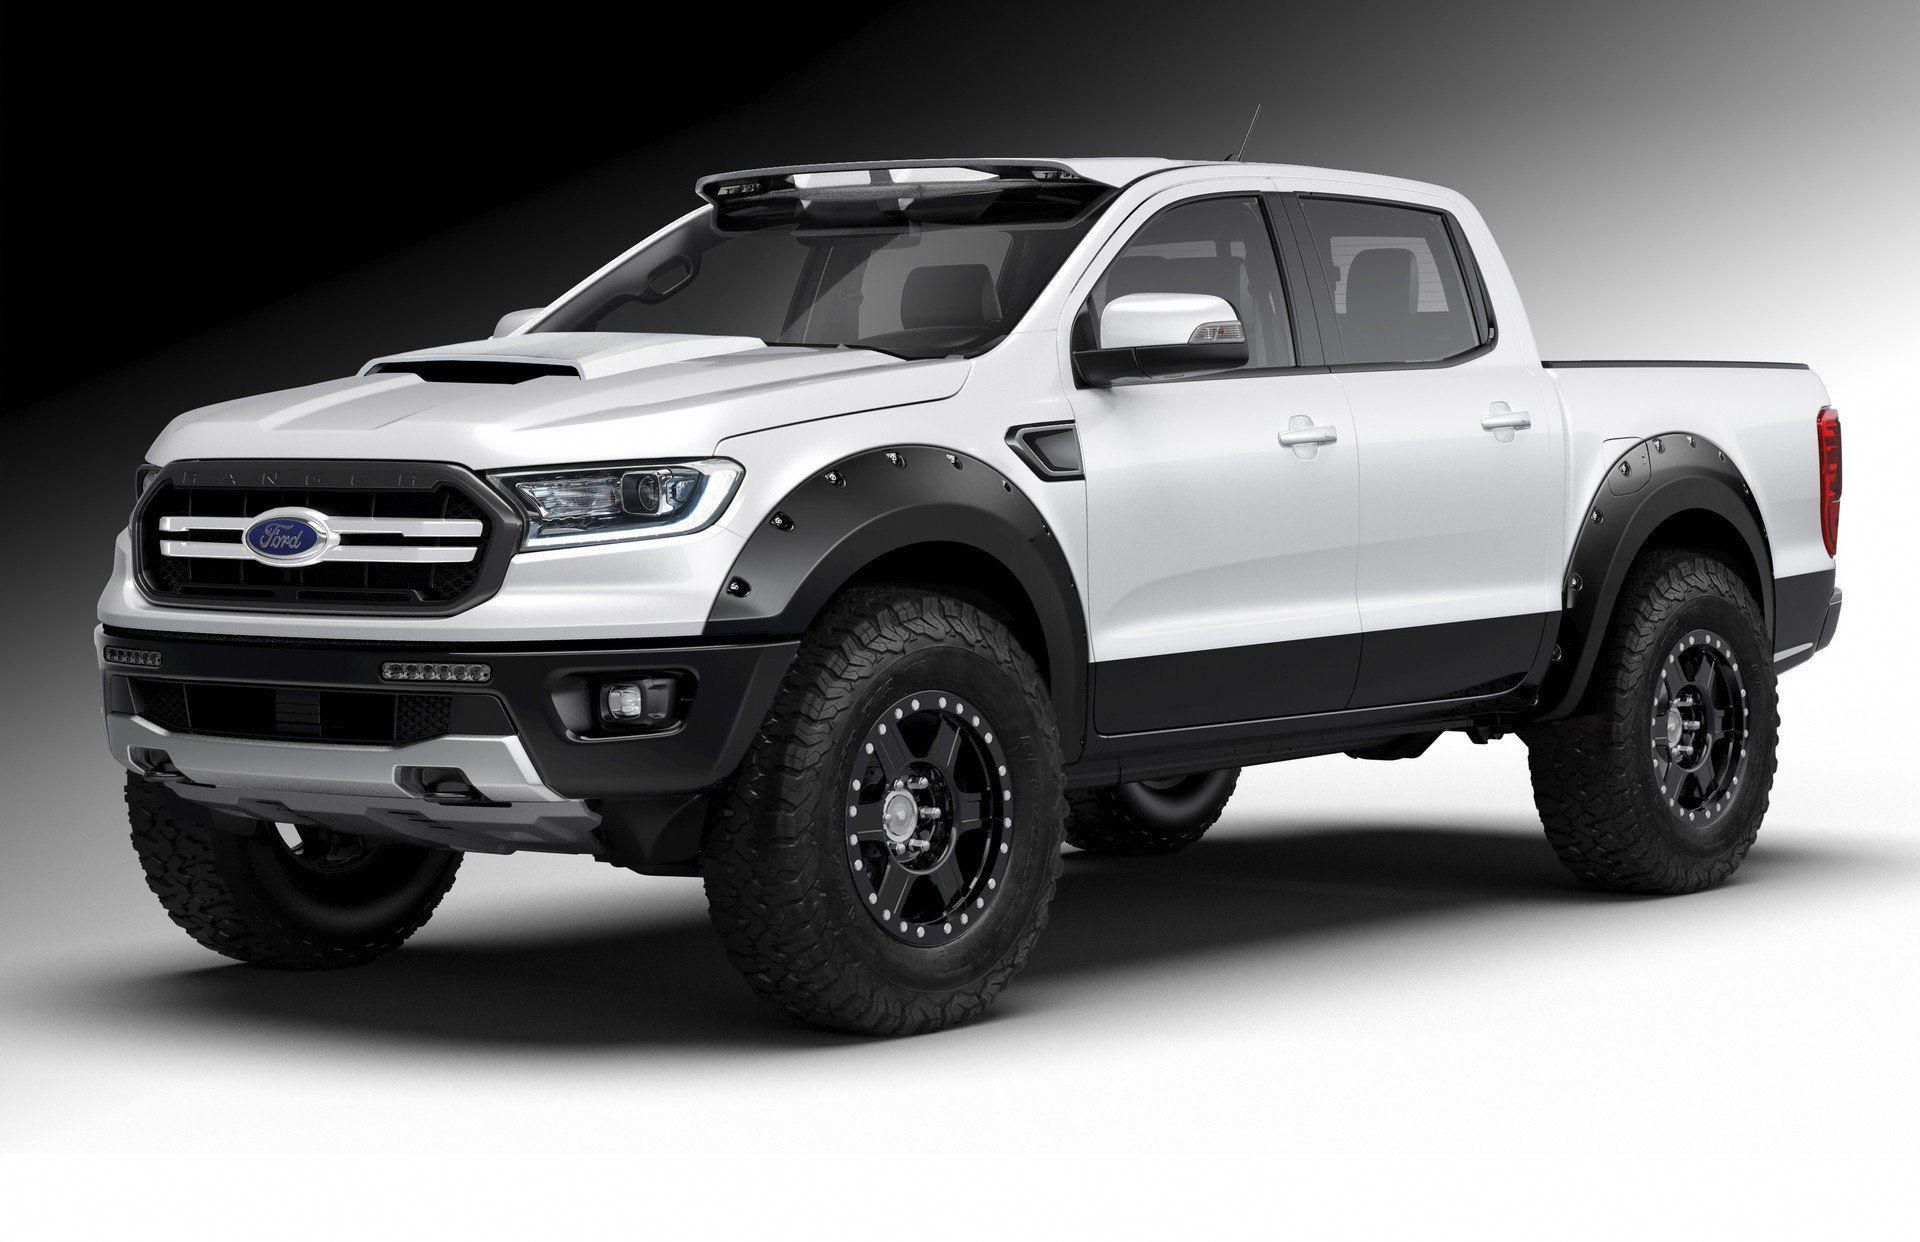 Ford Accessories Fordtrucks 2019 Ford Ranger Ford Ranger Ford Ranger Truck